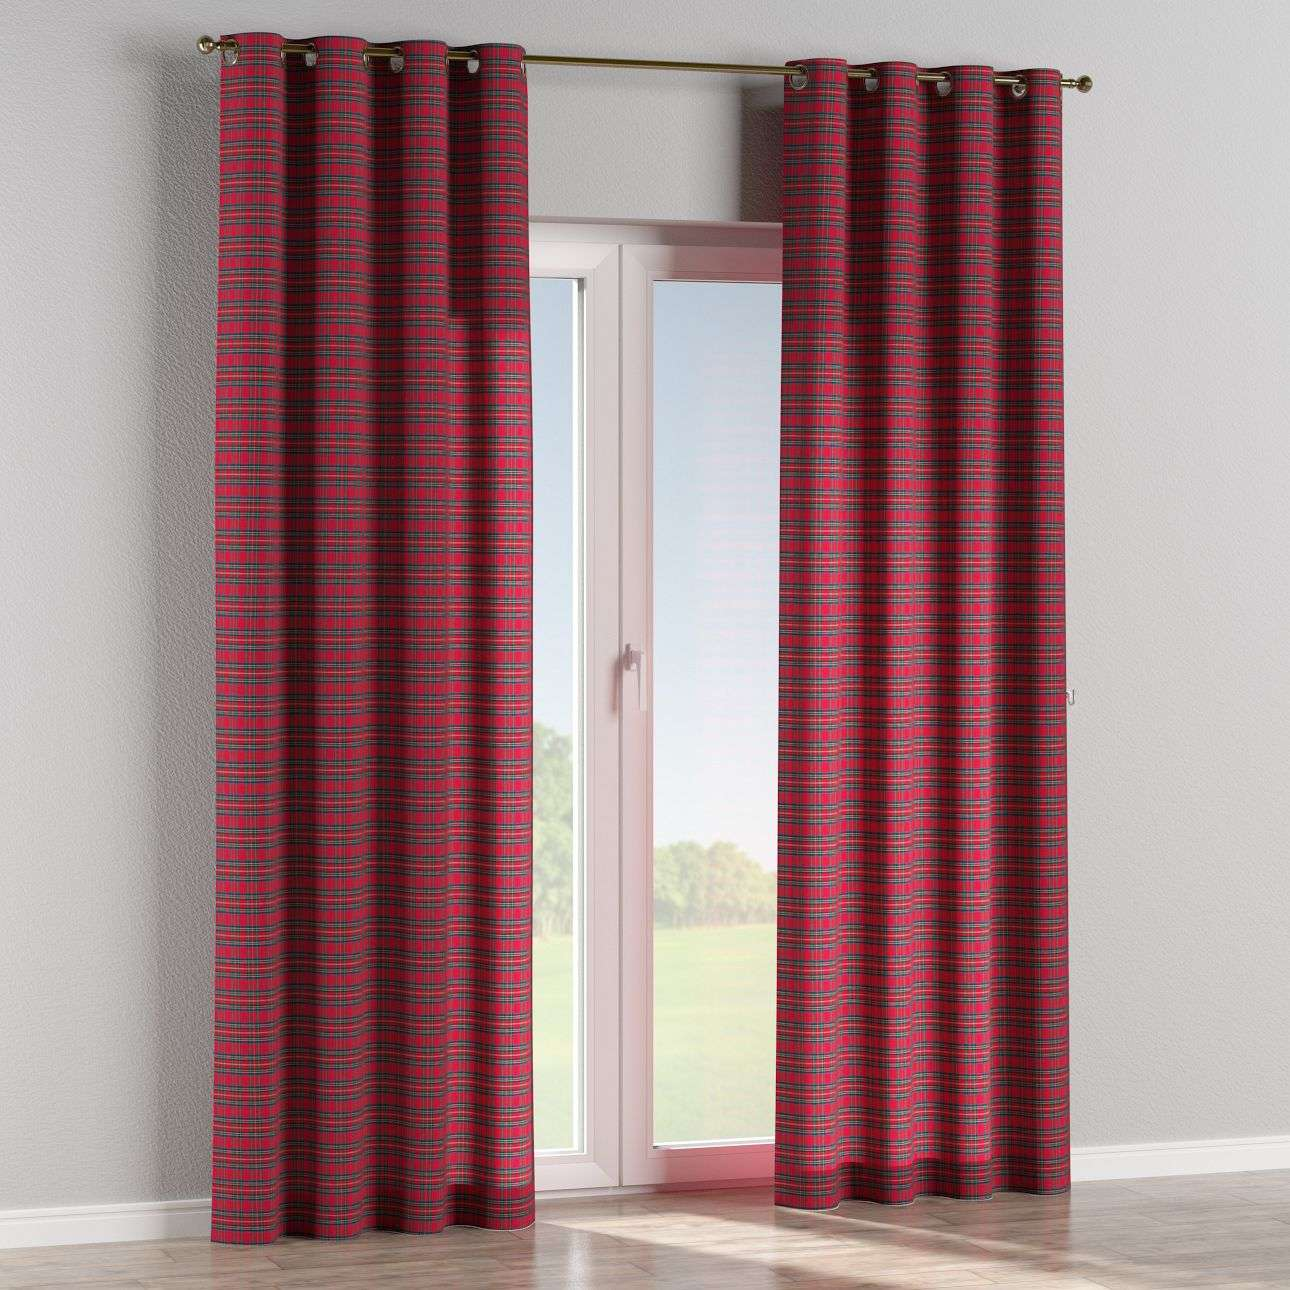 Eyelet curtains in collection Bristol, fabric: 126-29